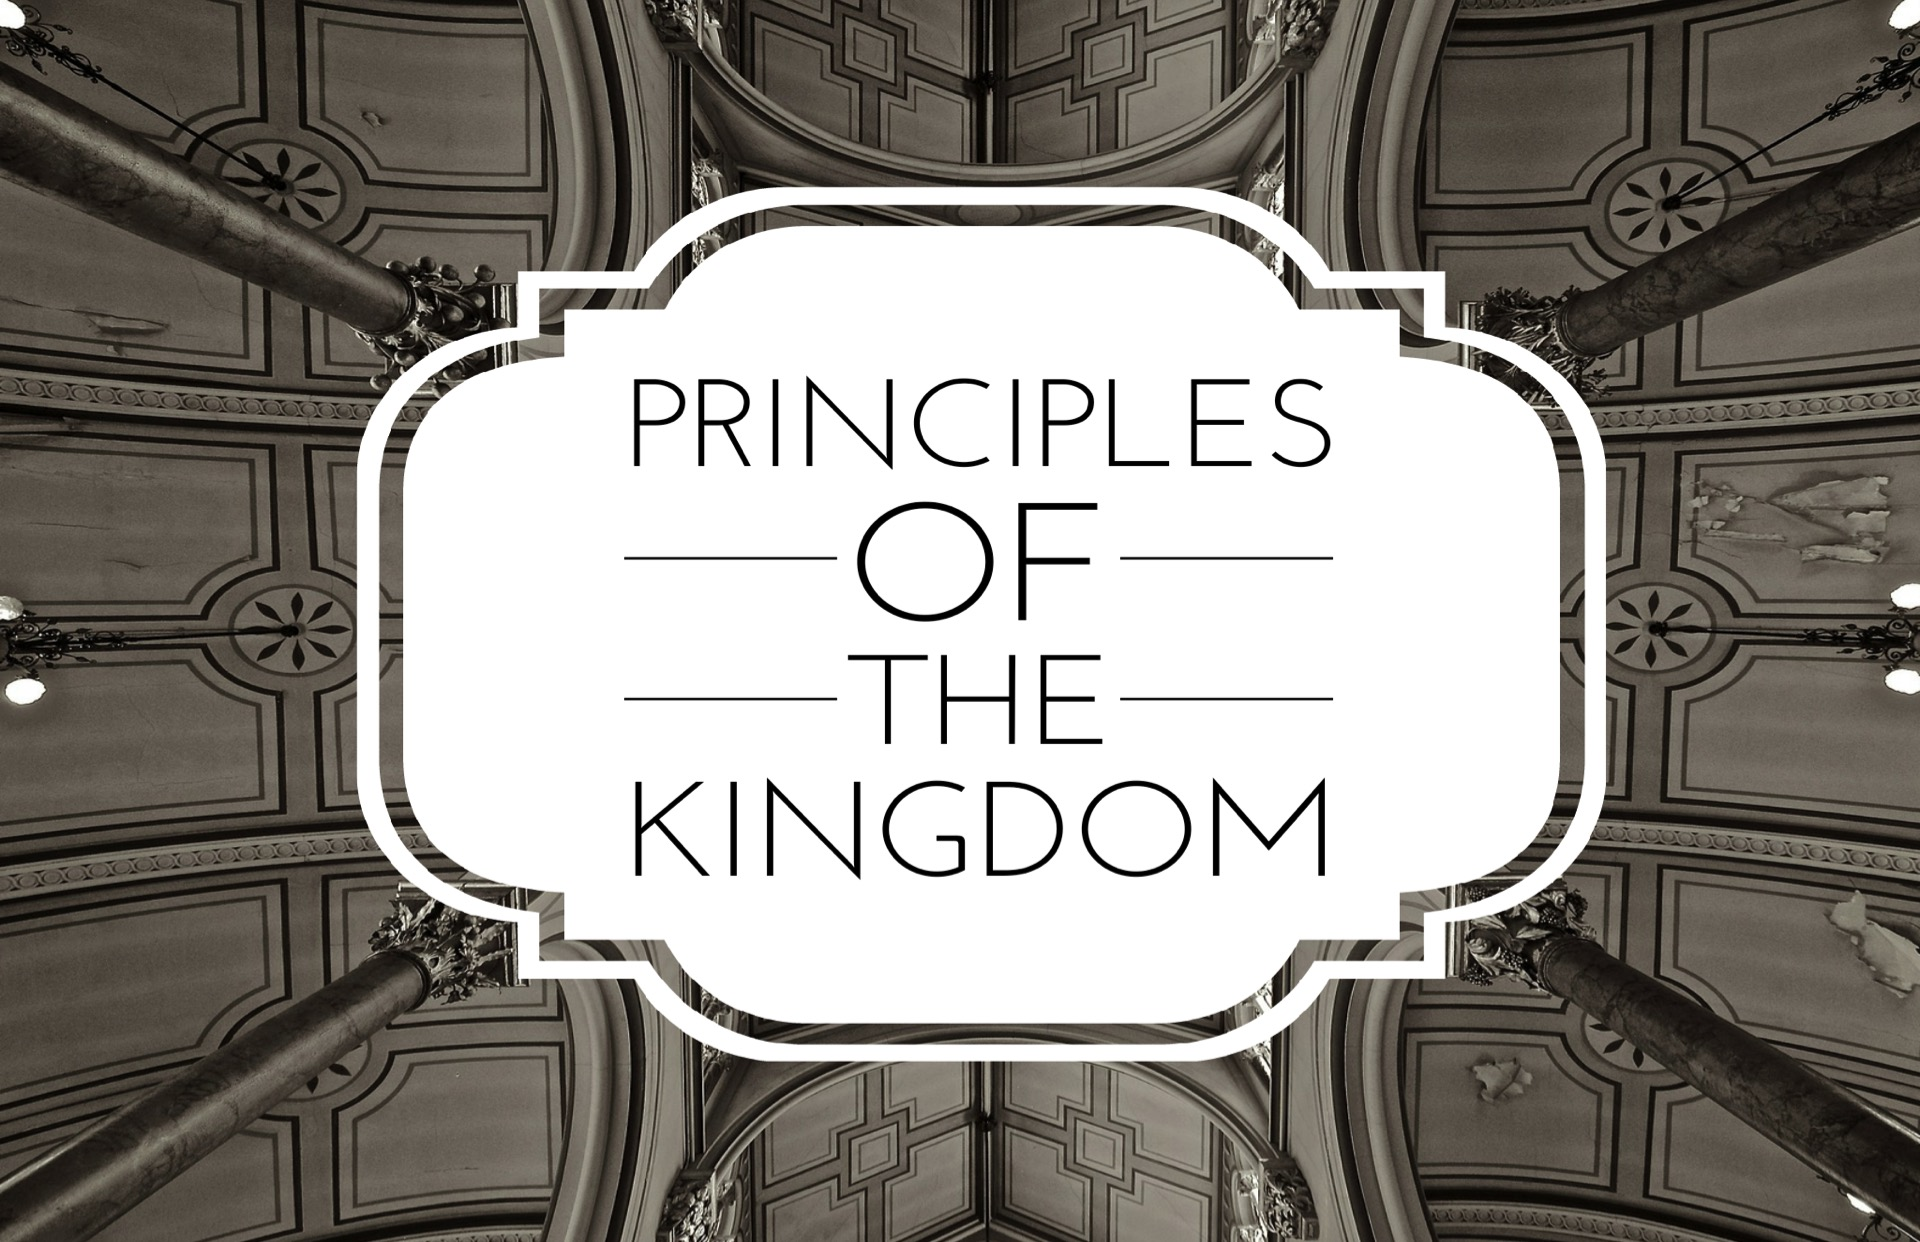 Principles of the Kingdom